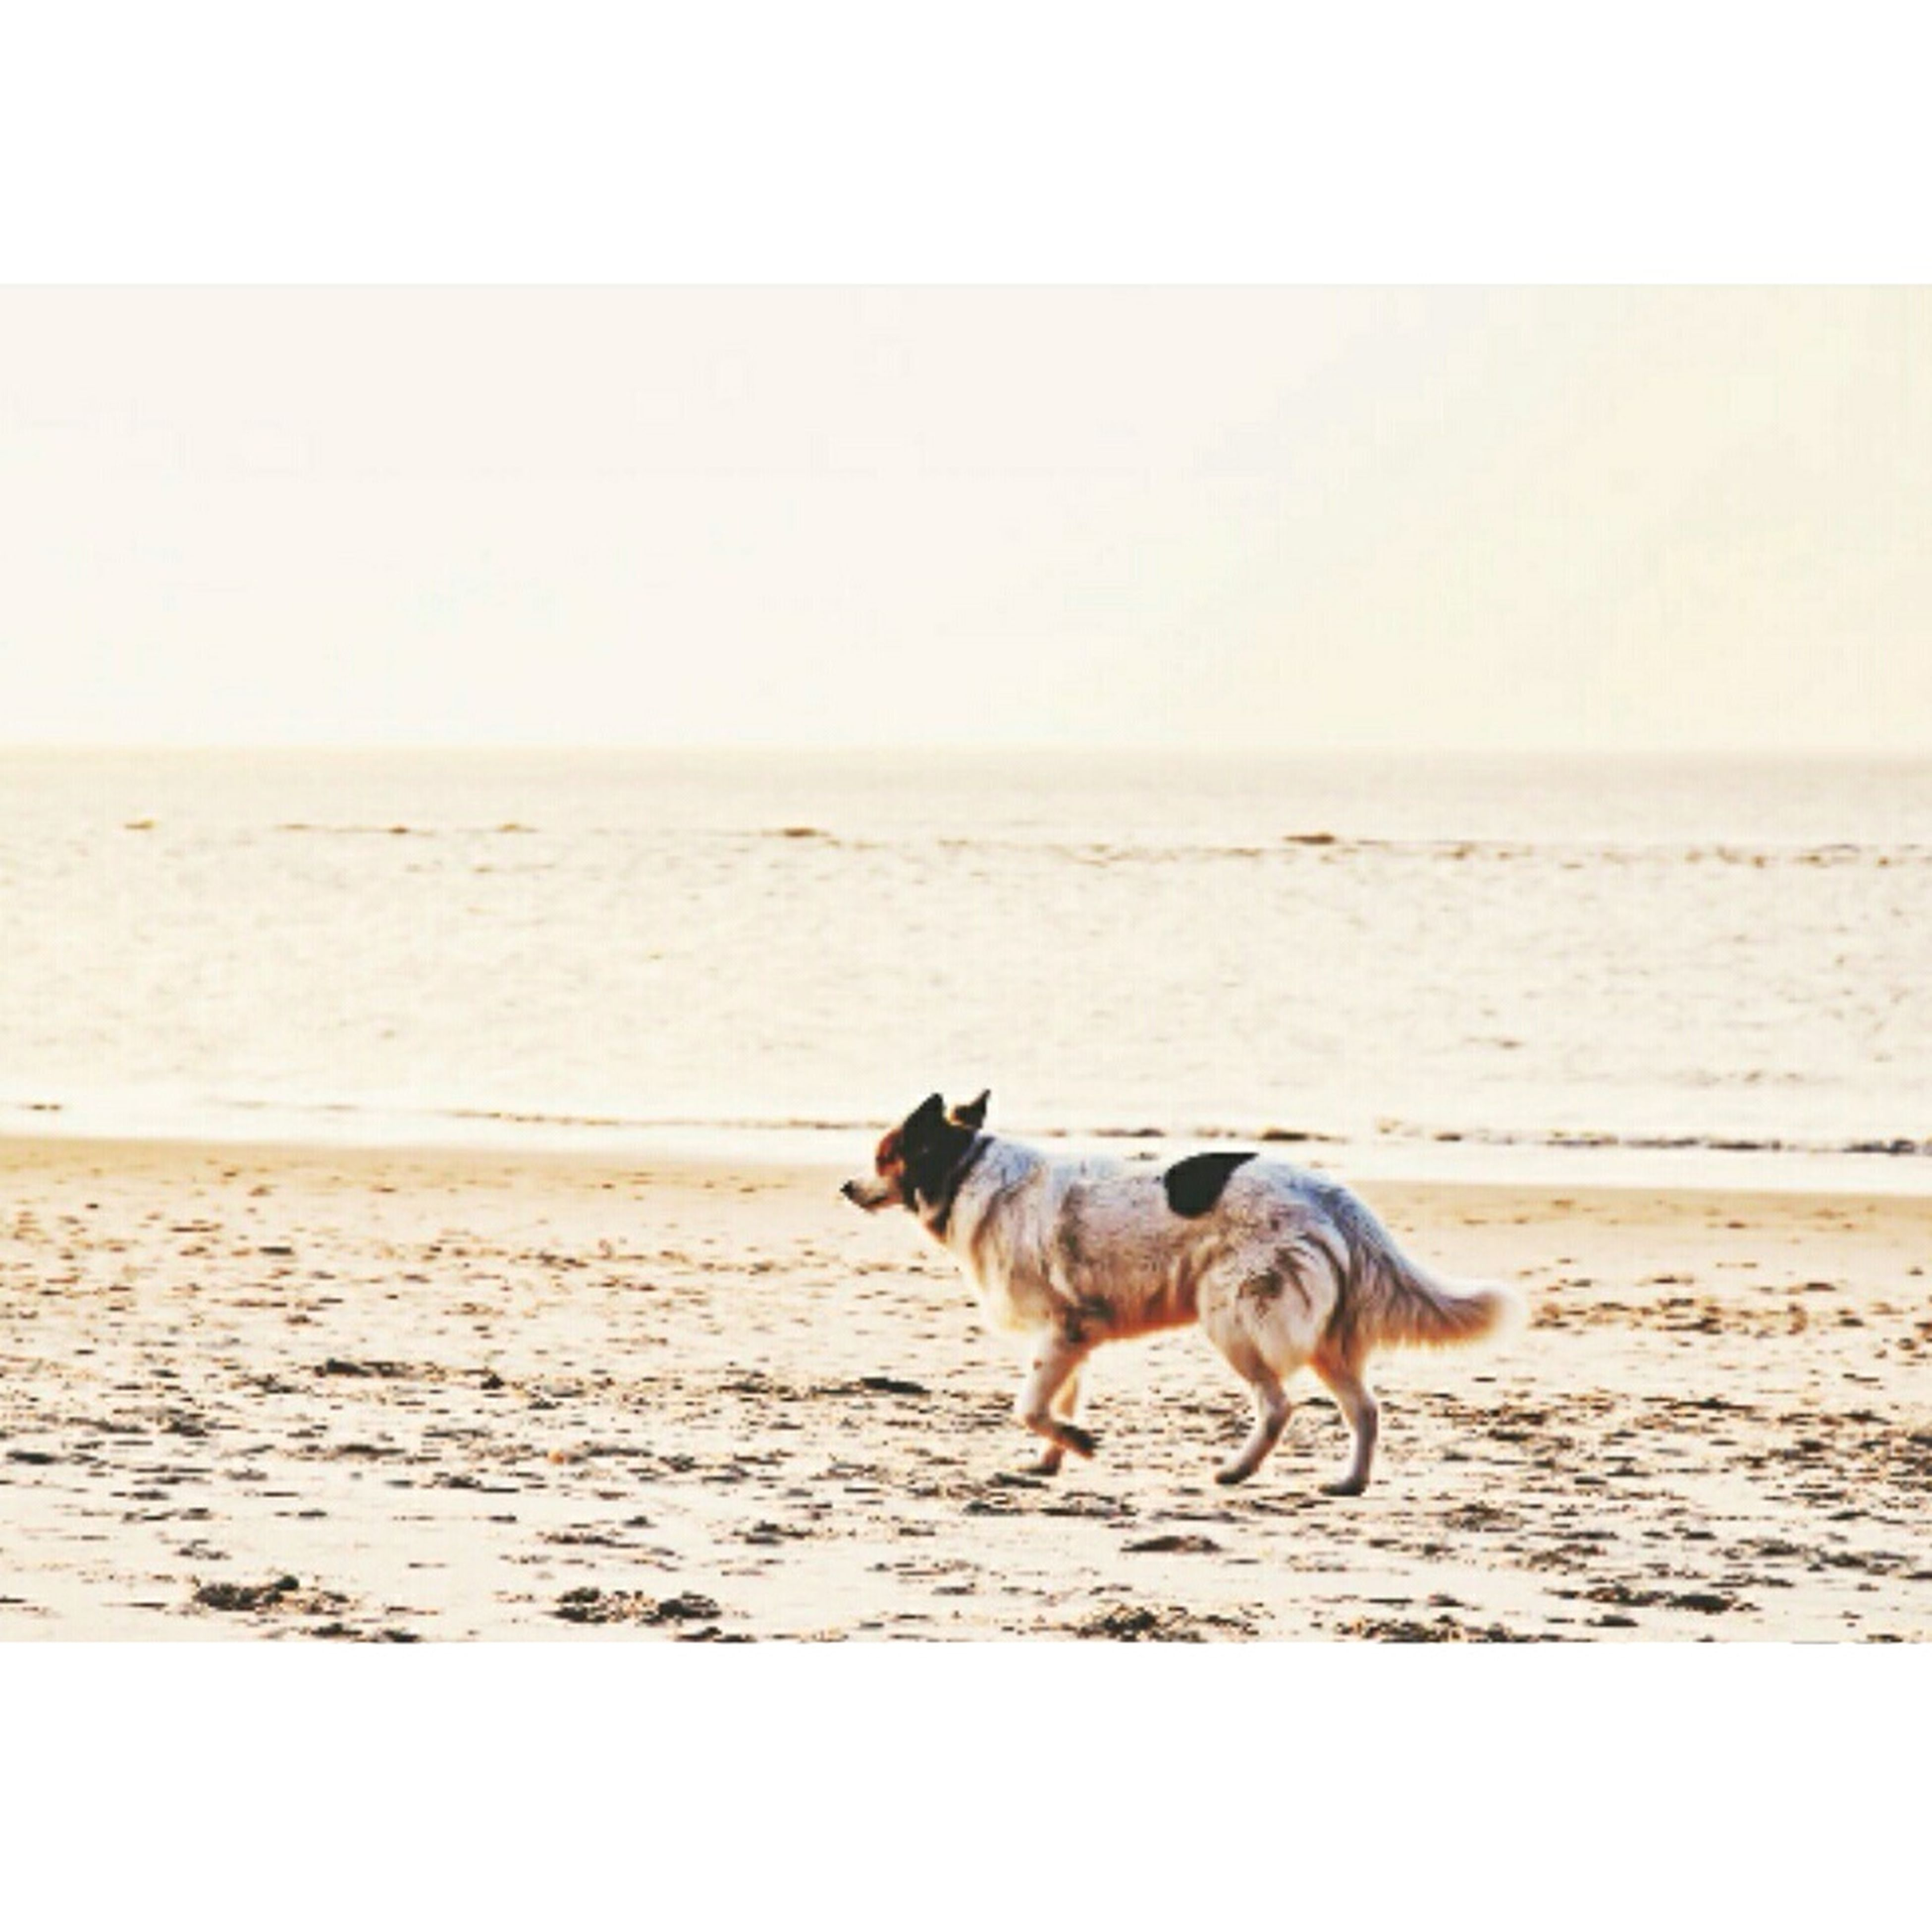 beach, sand, animal themes, sea, dog, one animal, horizon over water, shore, domestic animals, mammal, pets, water, transfer print, full length, nature, auto post production filter, copy space, tranquility, tranquil scene, sky